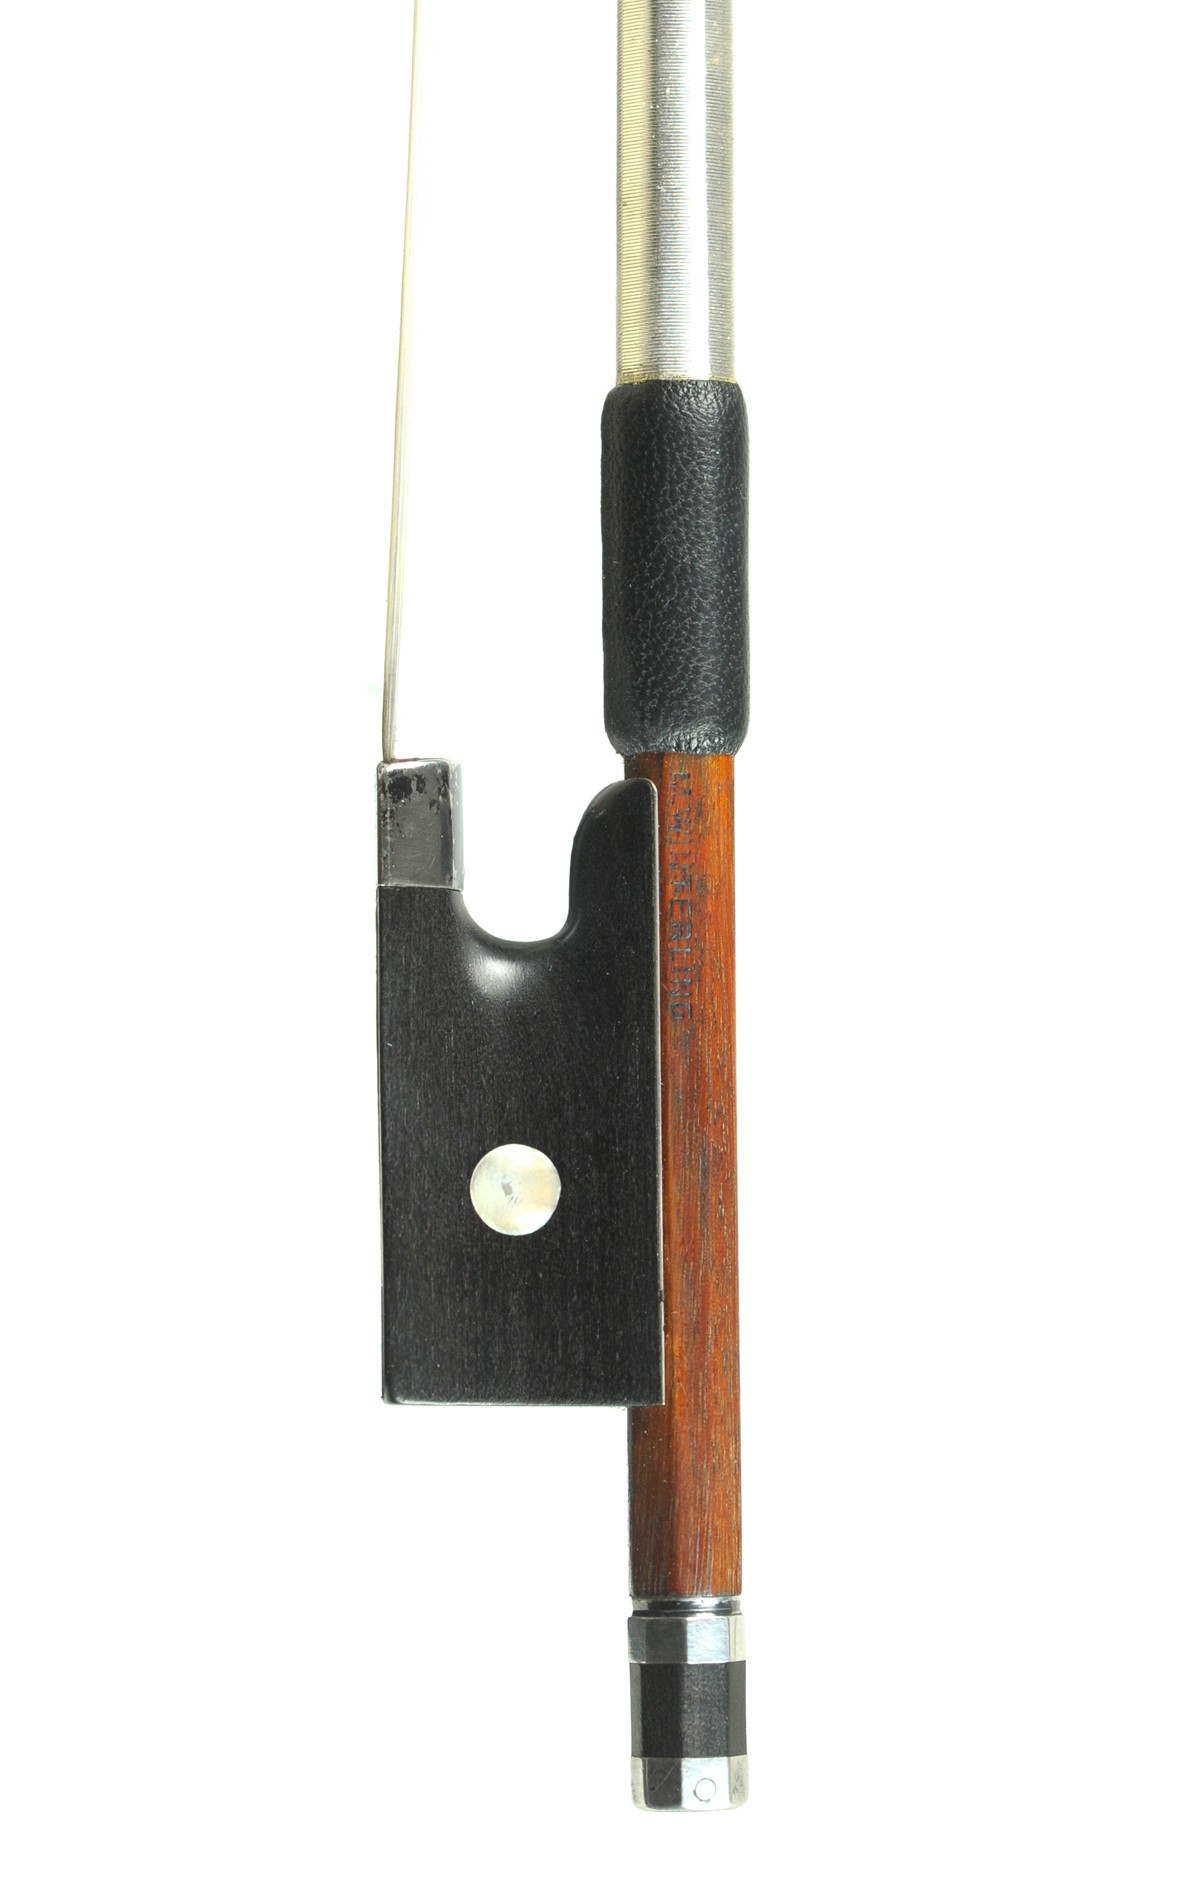 German violin bow, silver mounted, M. Winterling - frog